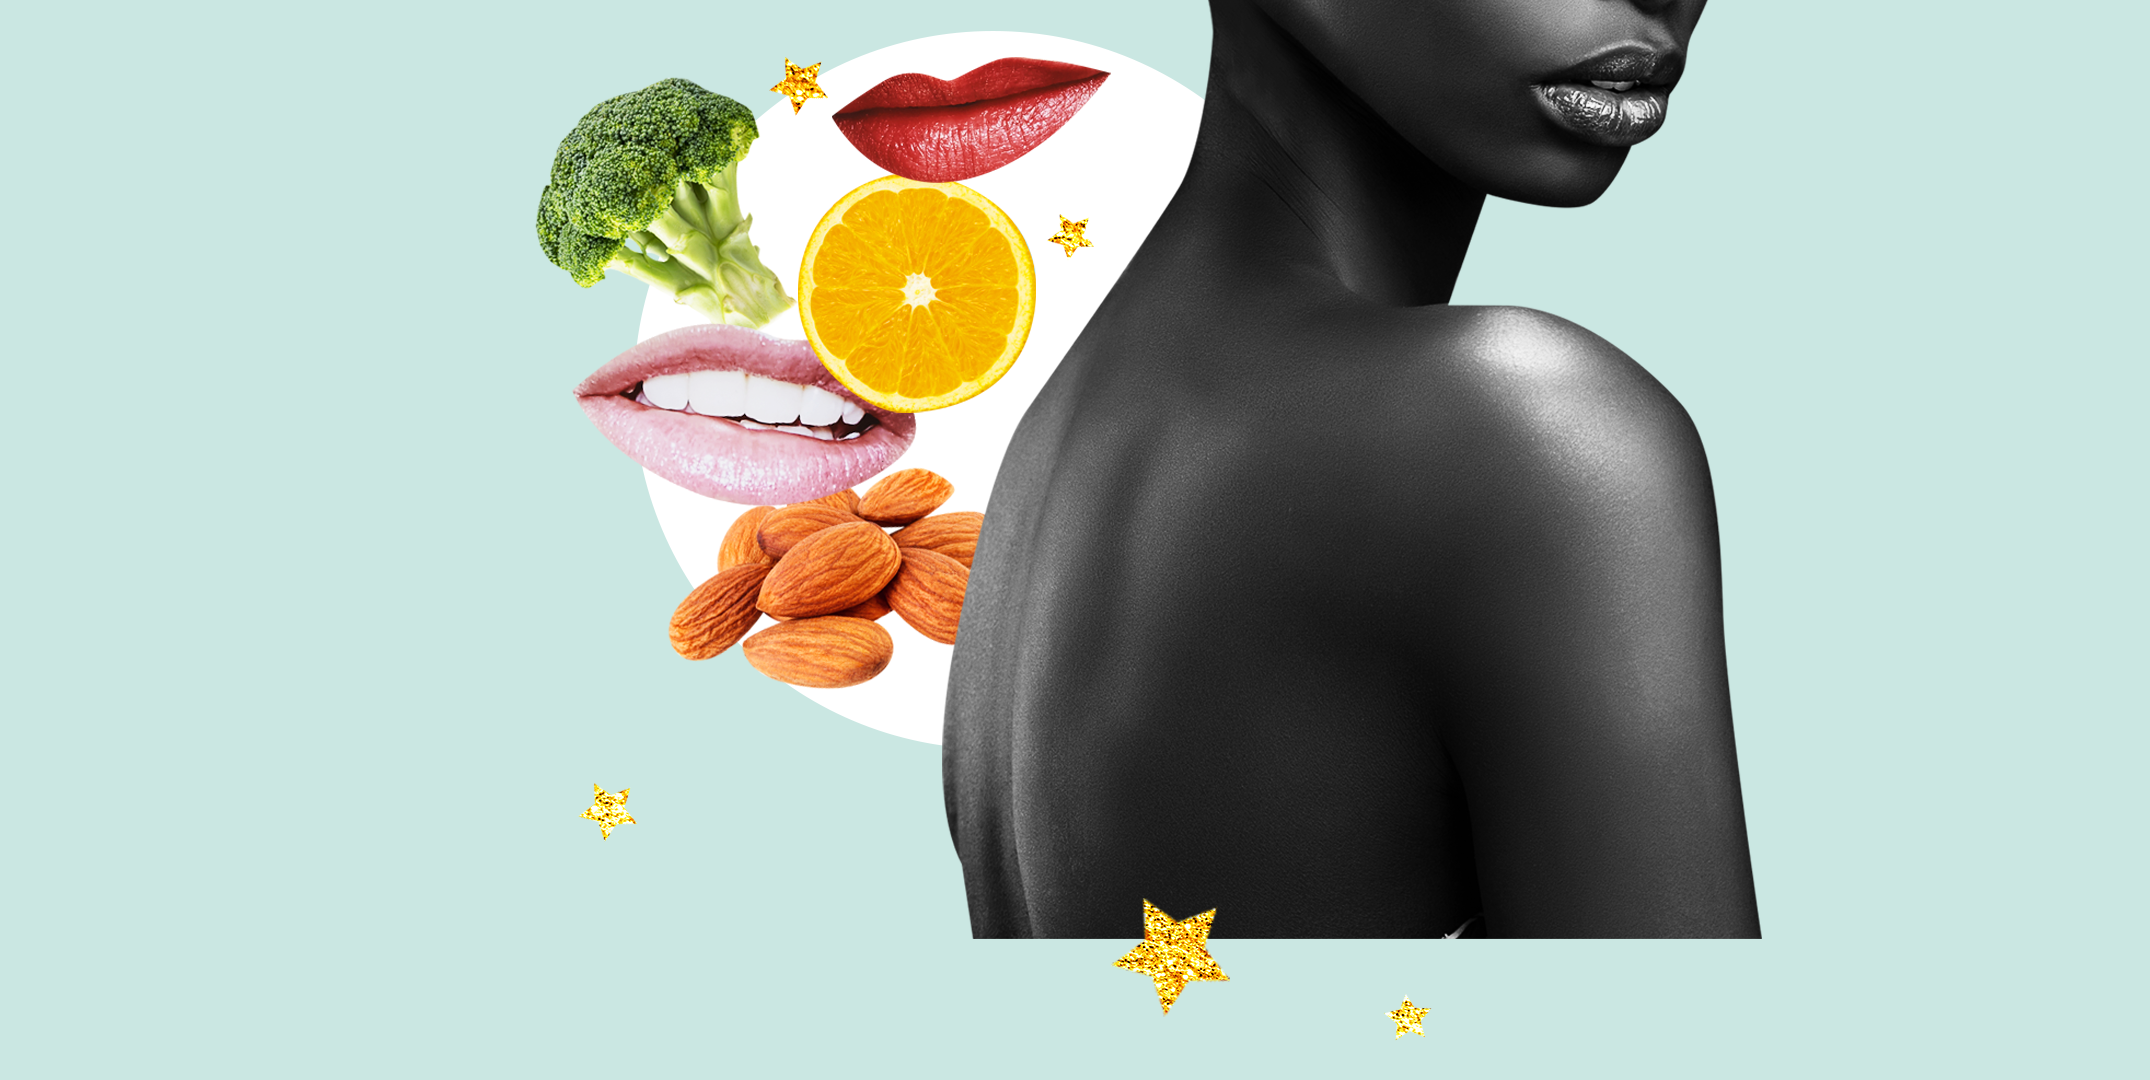 6 Foods for Clear Skin and Acne, According to a Dermatologist